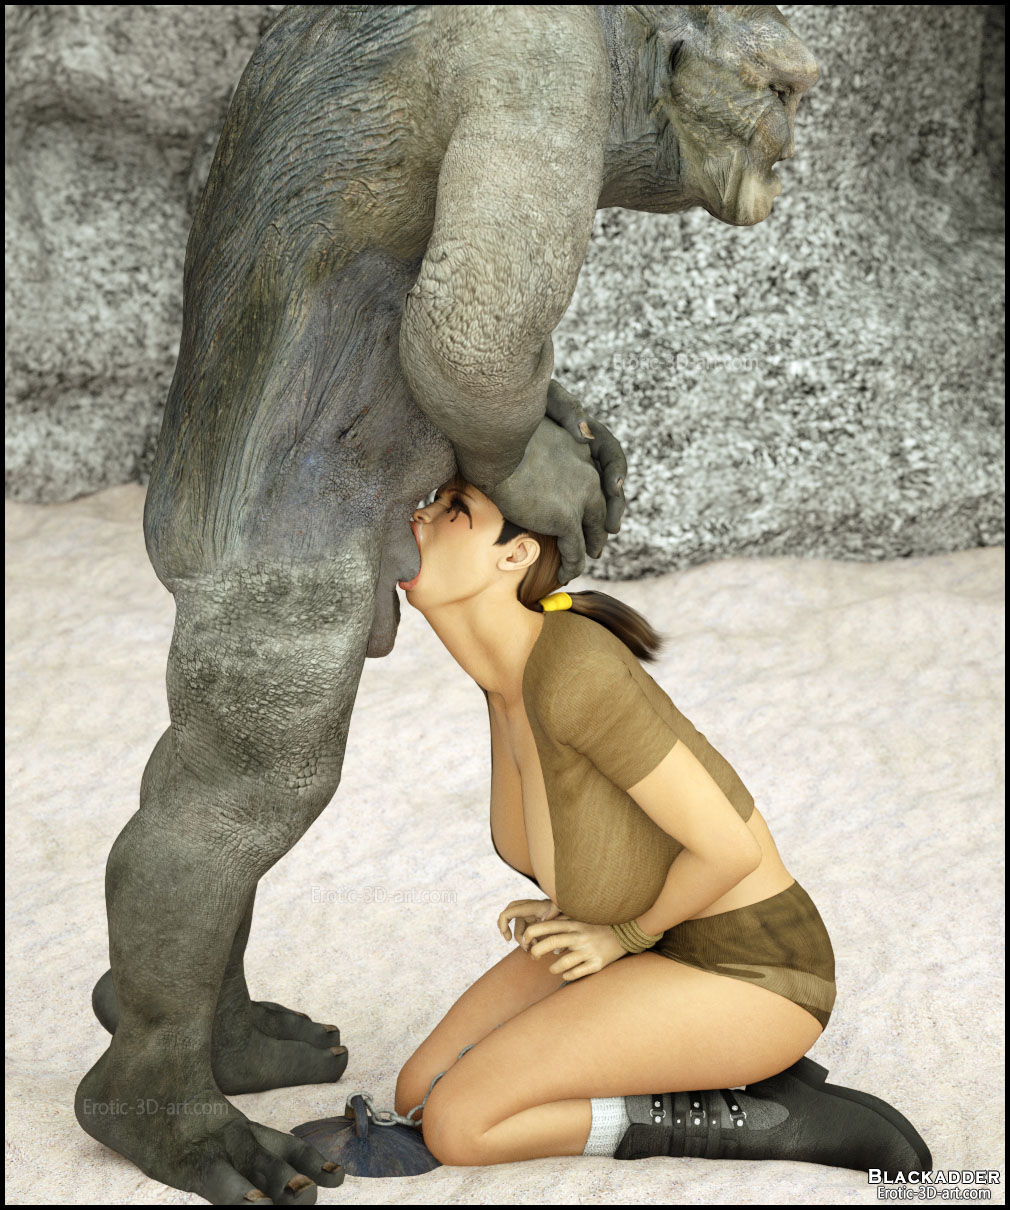 Erotic 3d art: lara croft porn monsters xxx tube